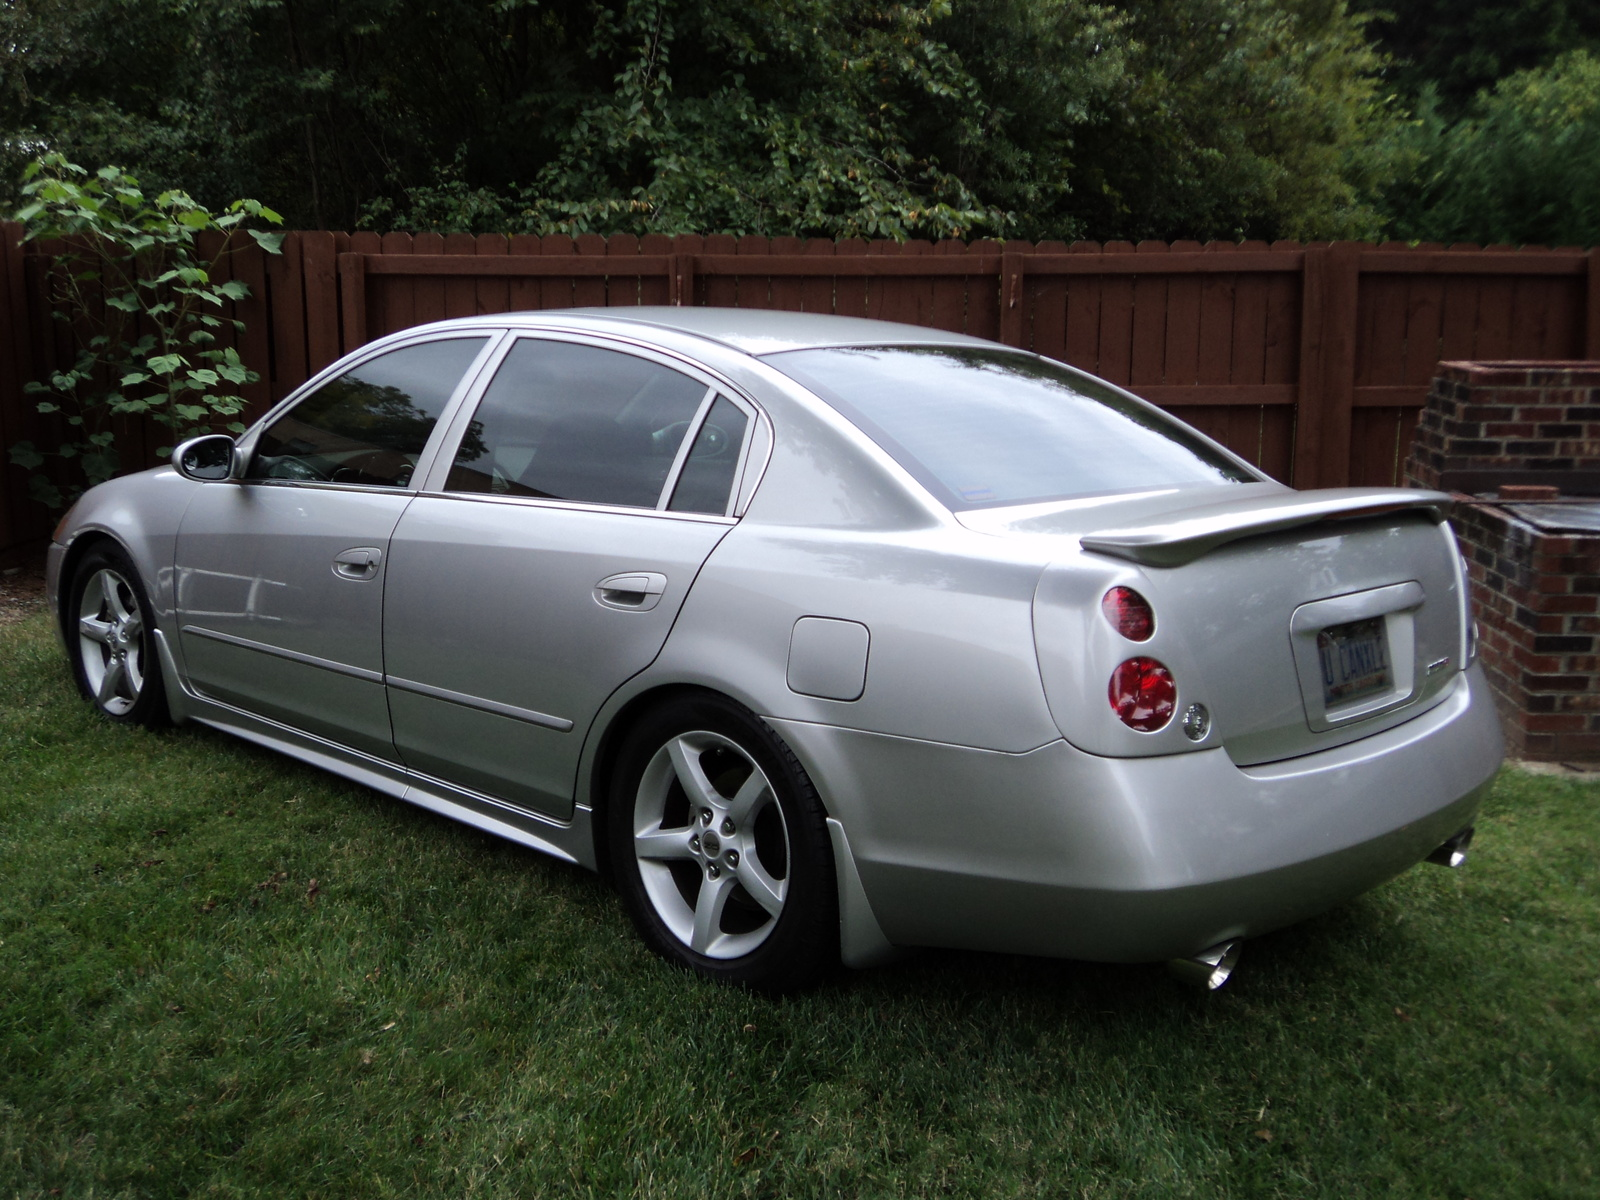 2005 nissan altima owner guide images